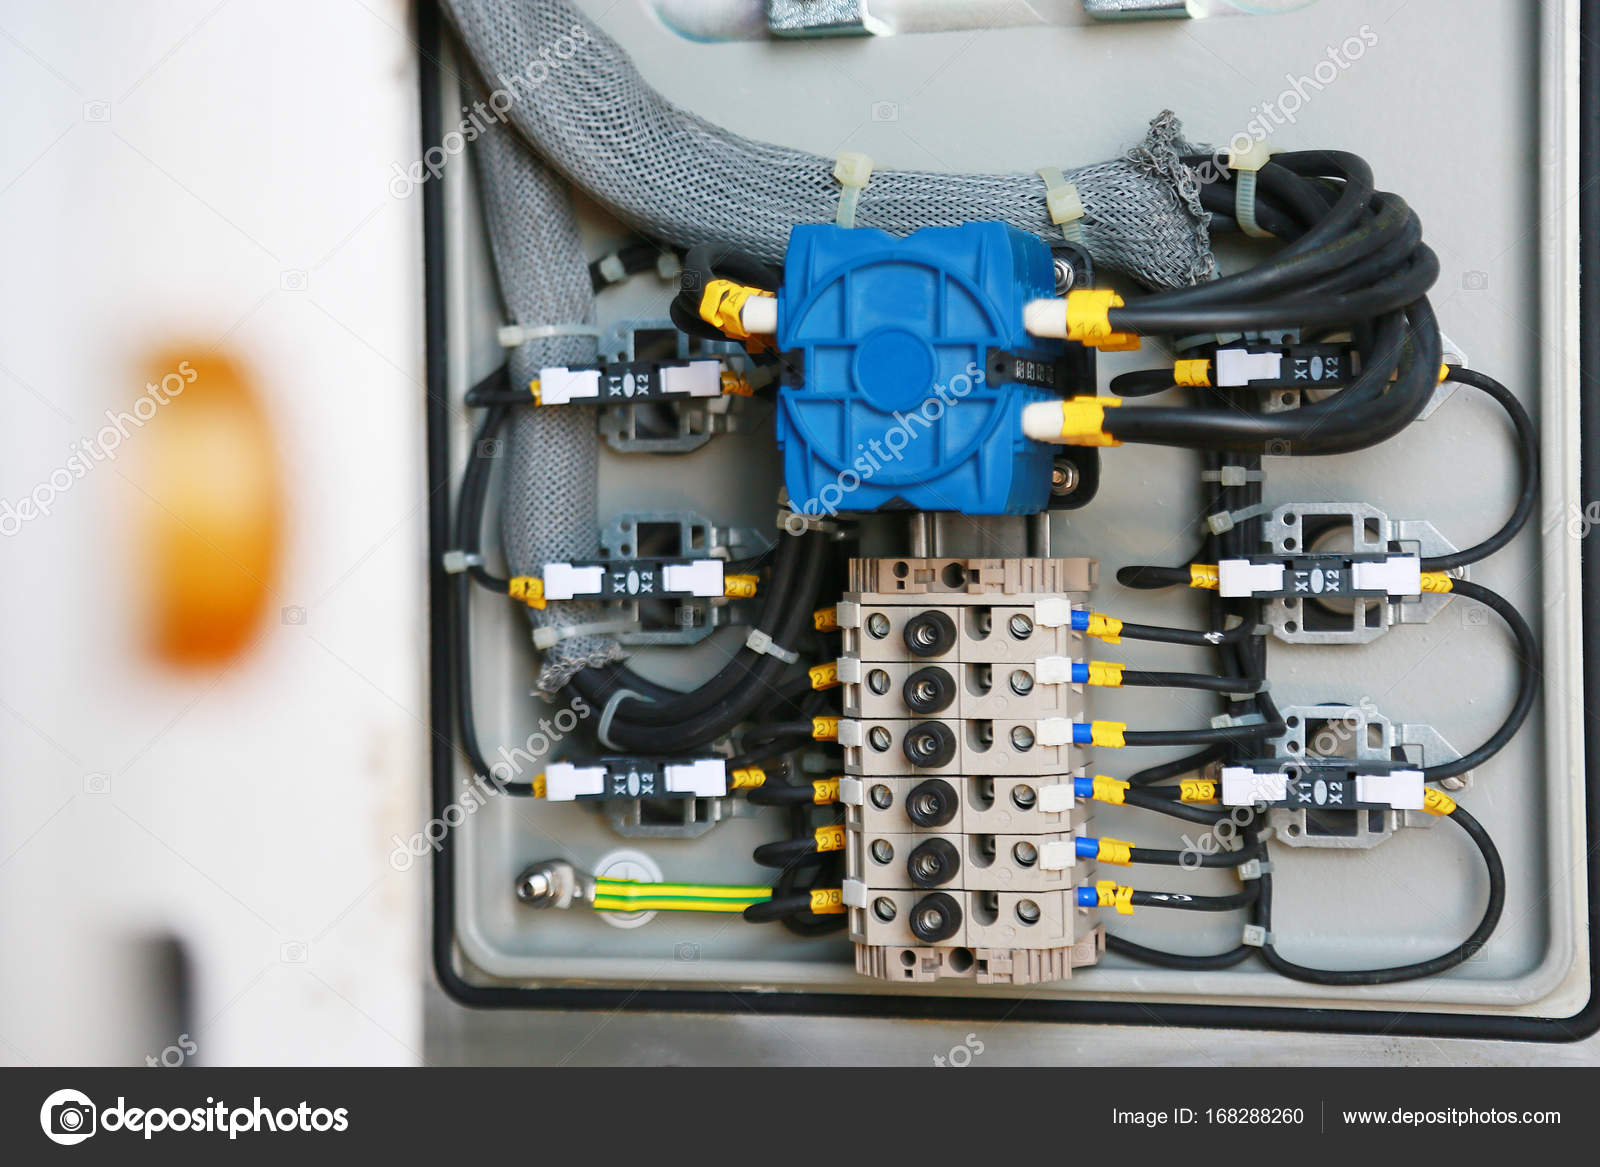 hight resolution of electrical terminal in junction box and service by technician electrical device install in control panel for